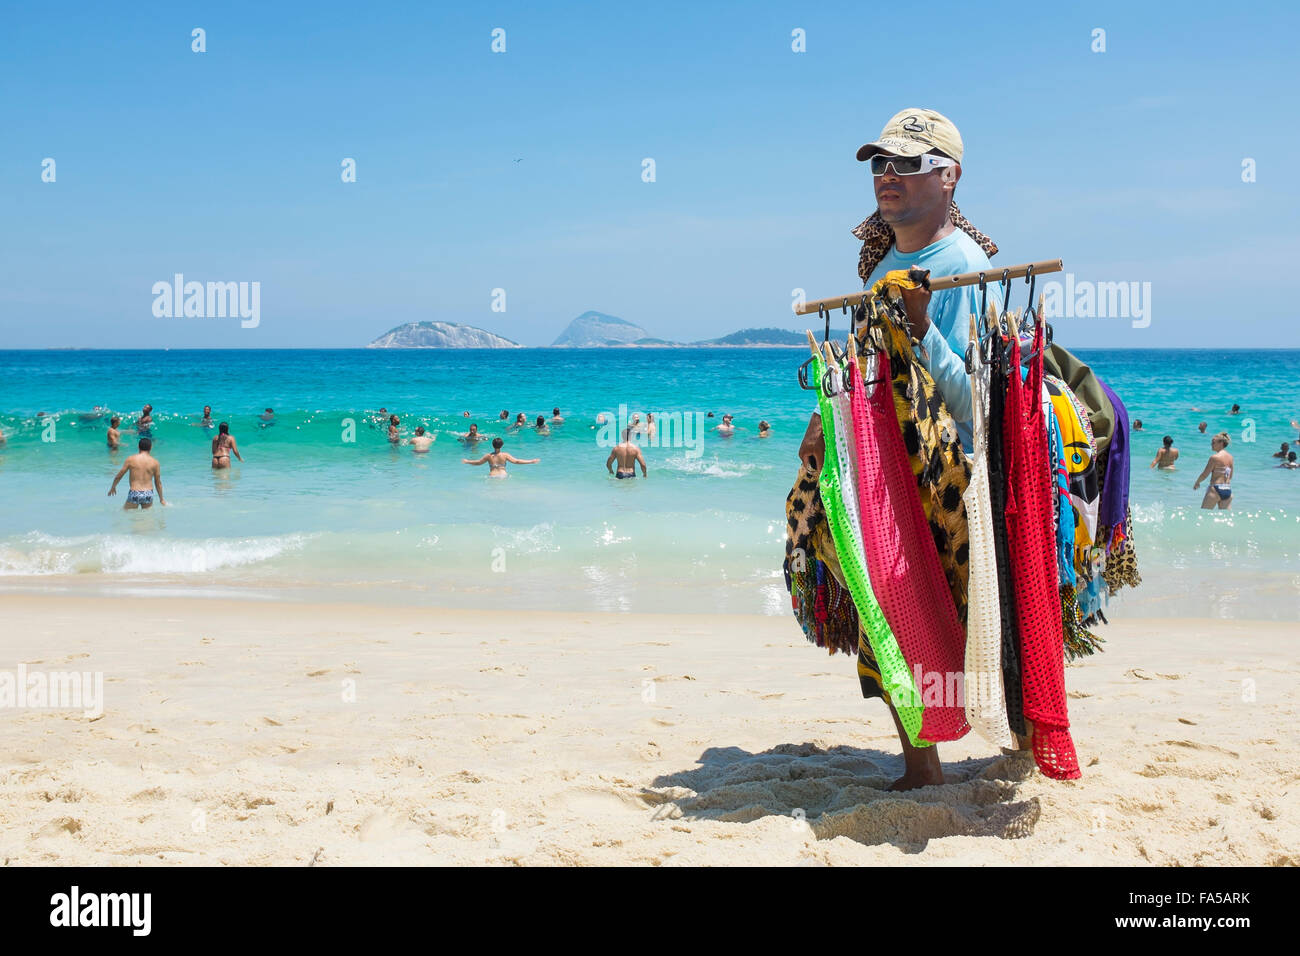 RIO DE JANEIRO, BRAZIL - MARCH 15, 2015: A beach vendor selling brightly colored kanga sarongs carries merchandise - Stock Image